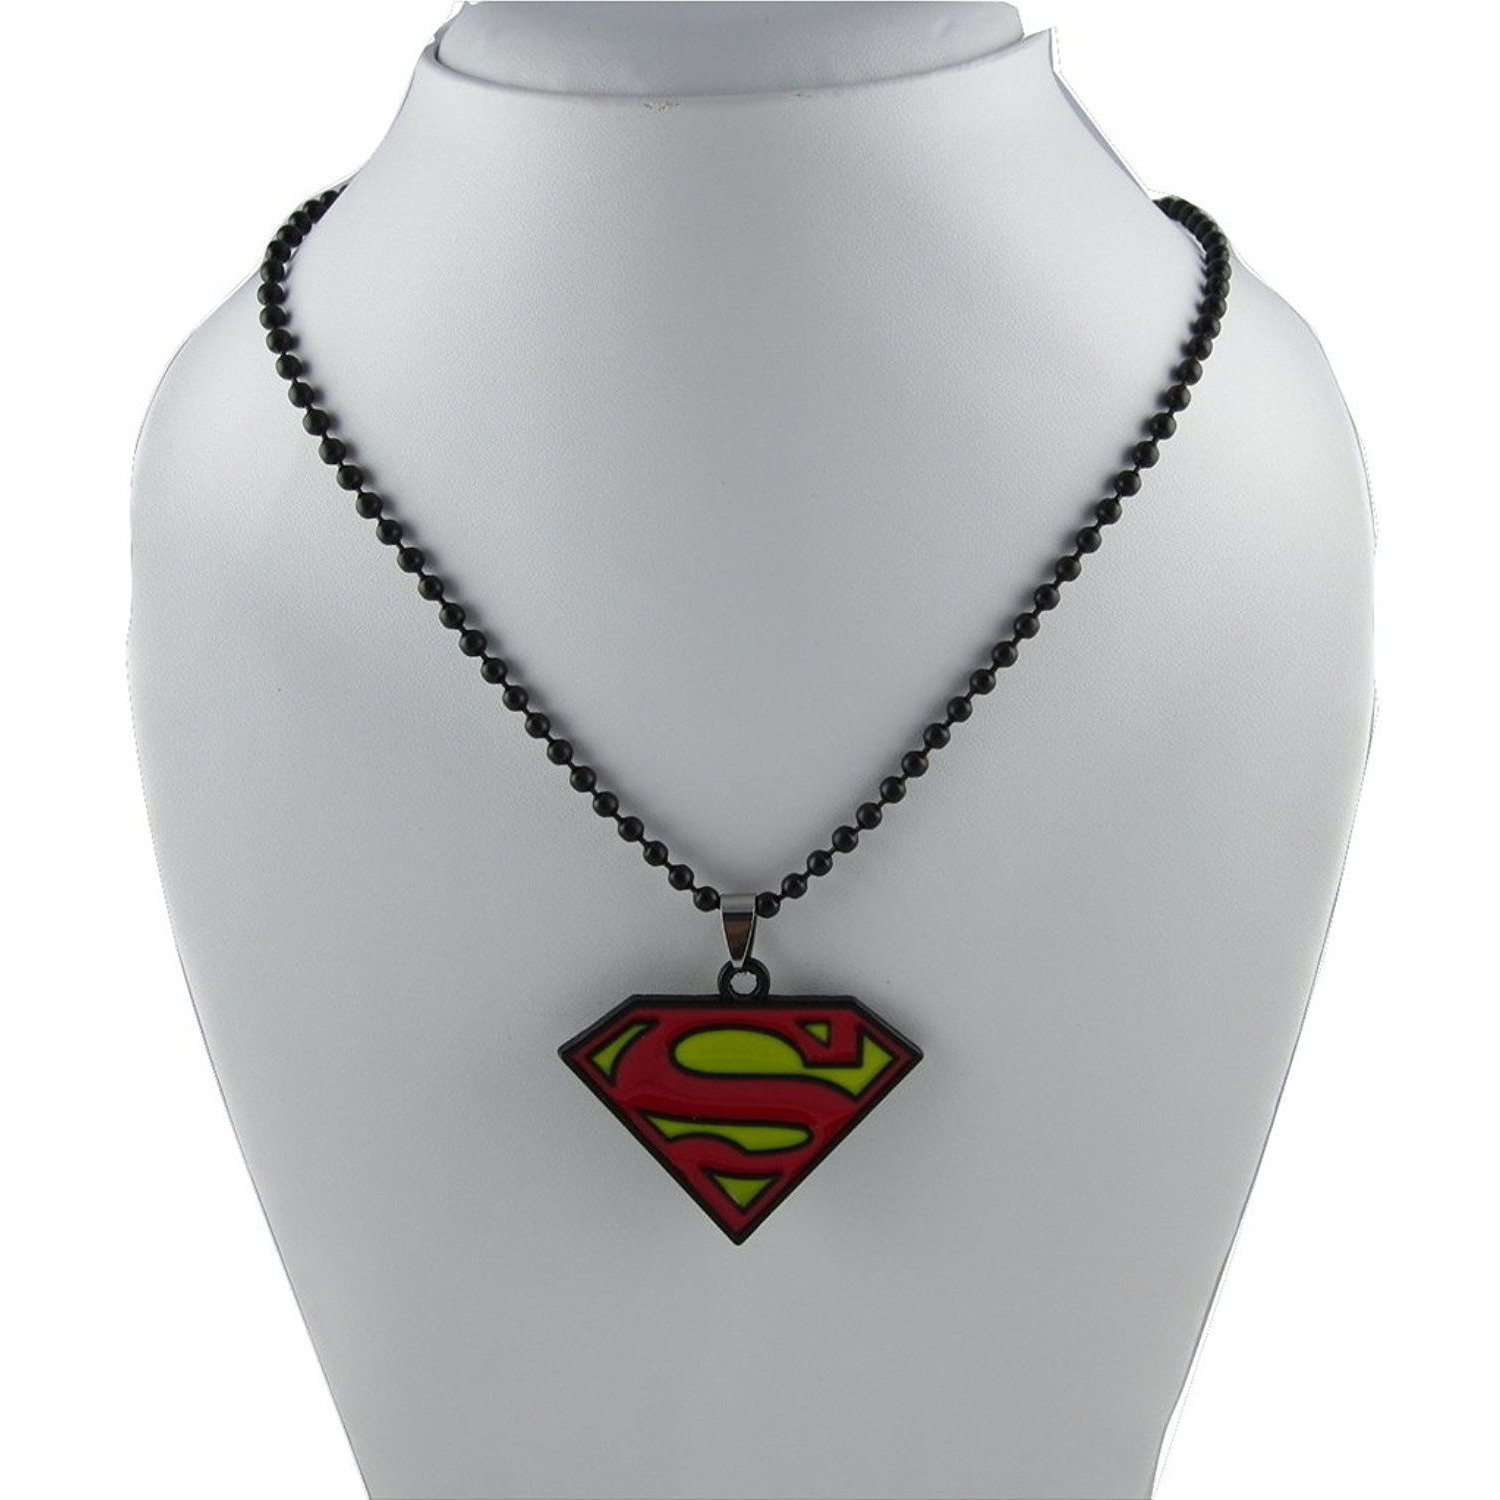 Zivom Supermain Pendant Chain 26.5